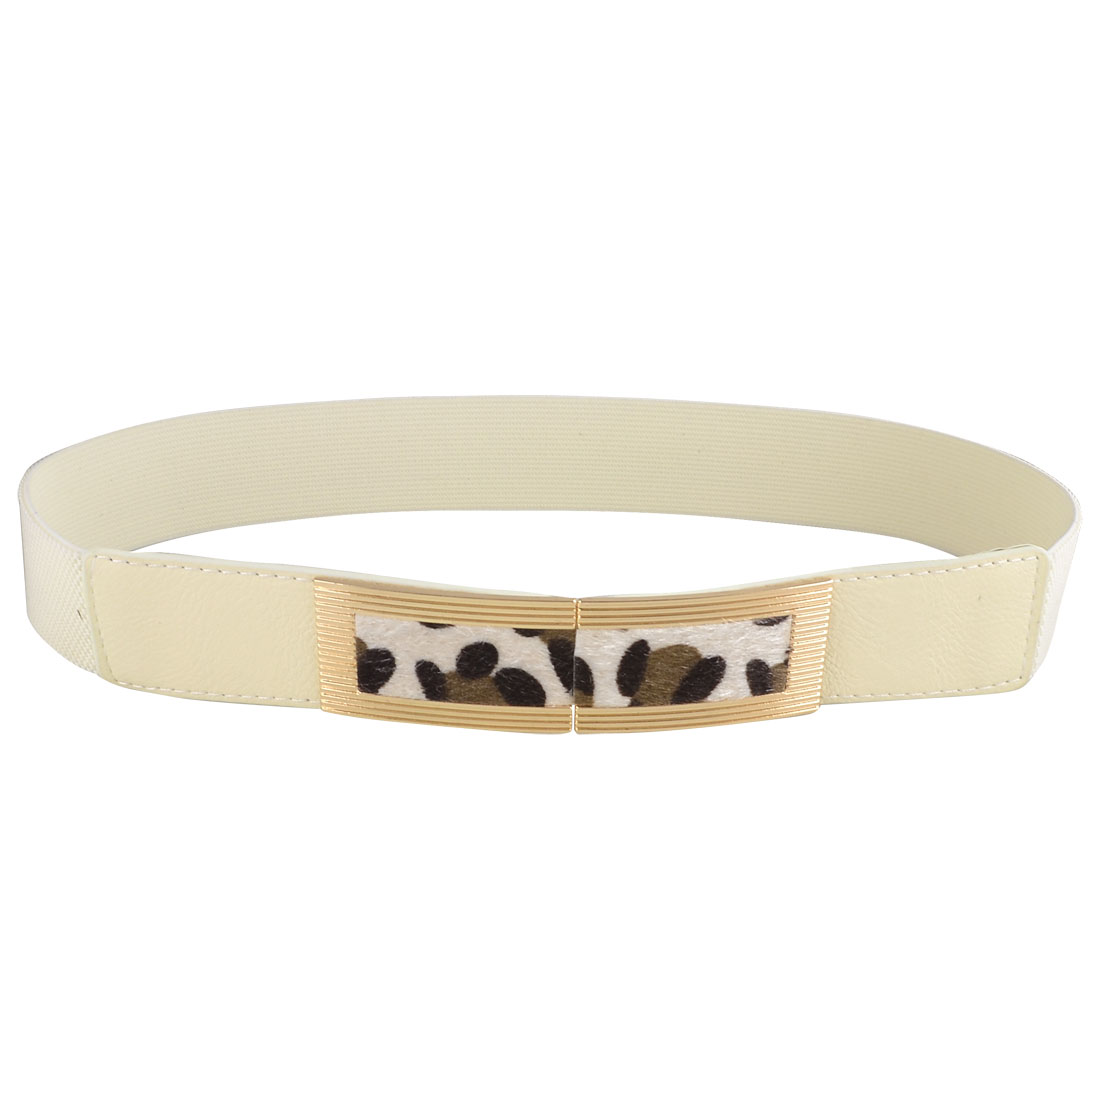 Off White Faux Leather Buckle Part Textured High Waist Belt Band for Ladies